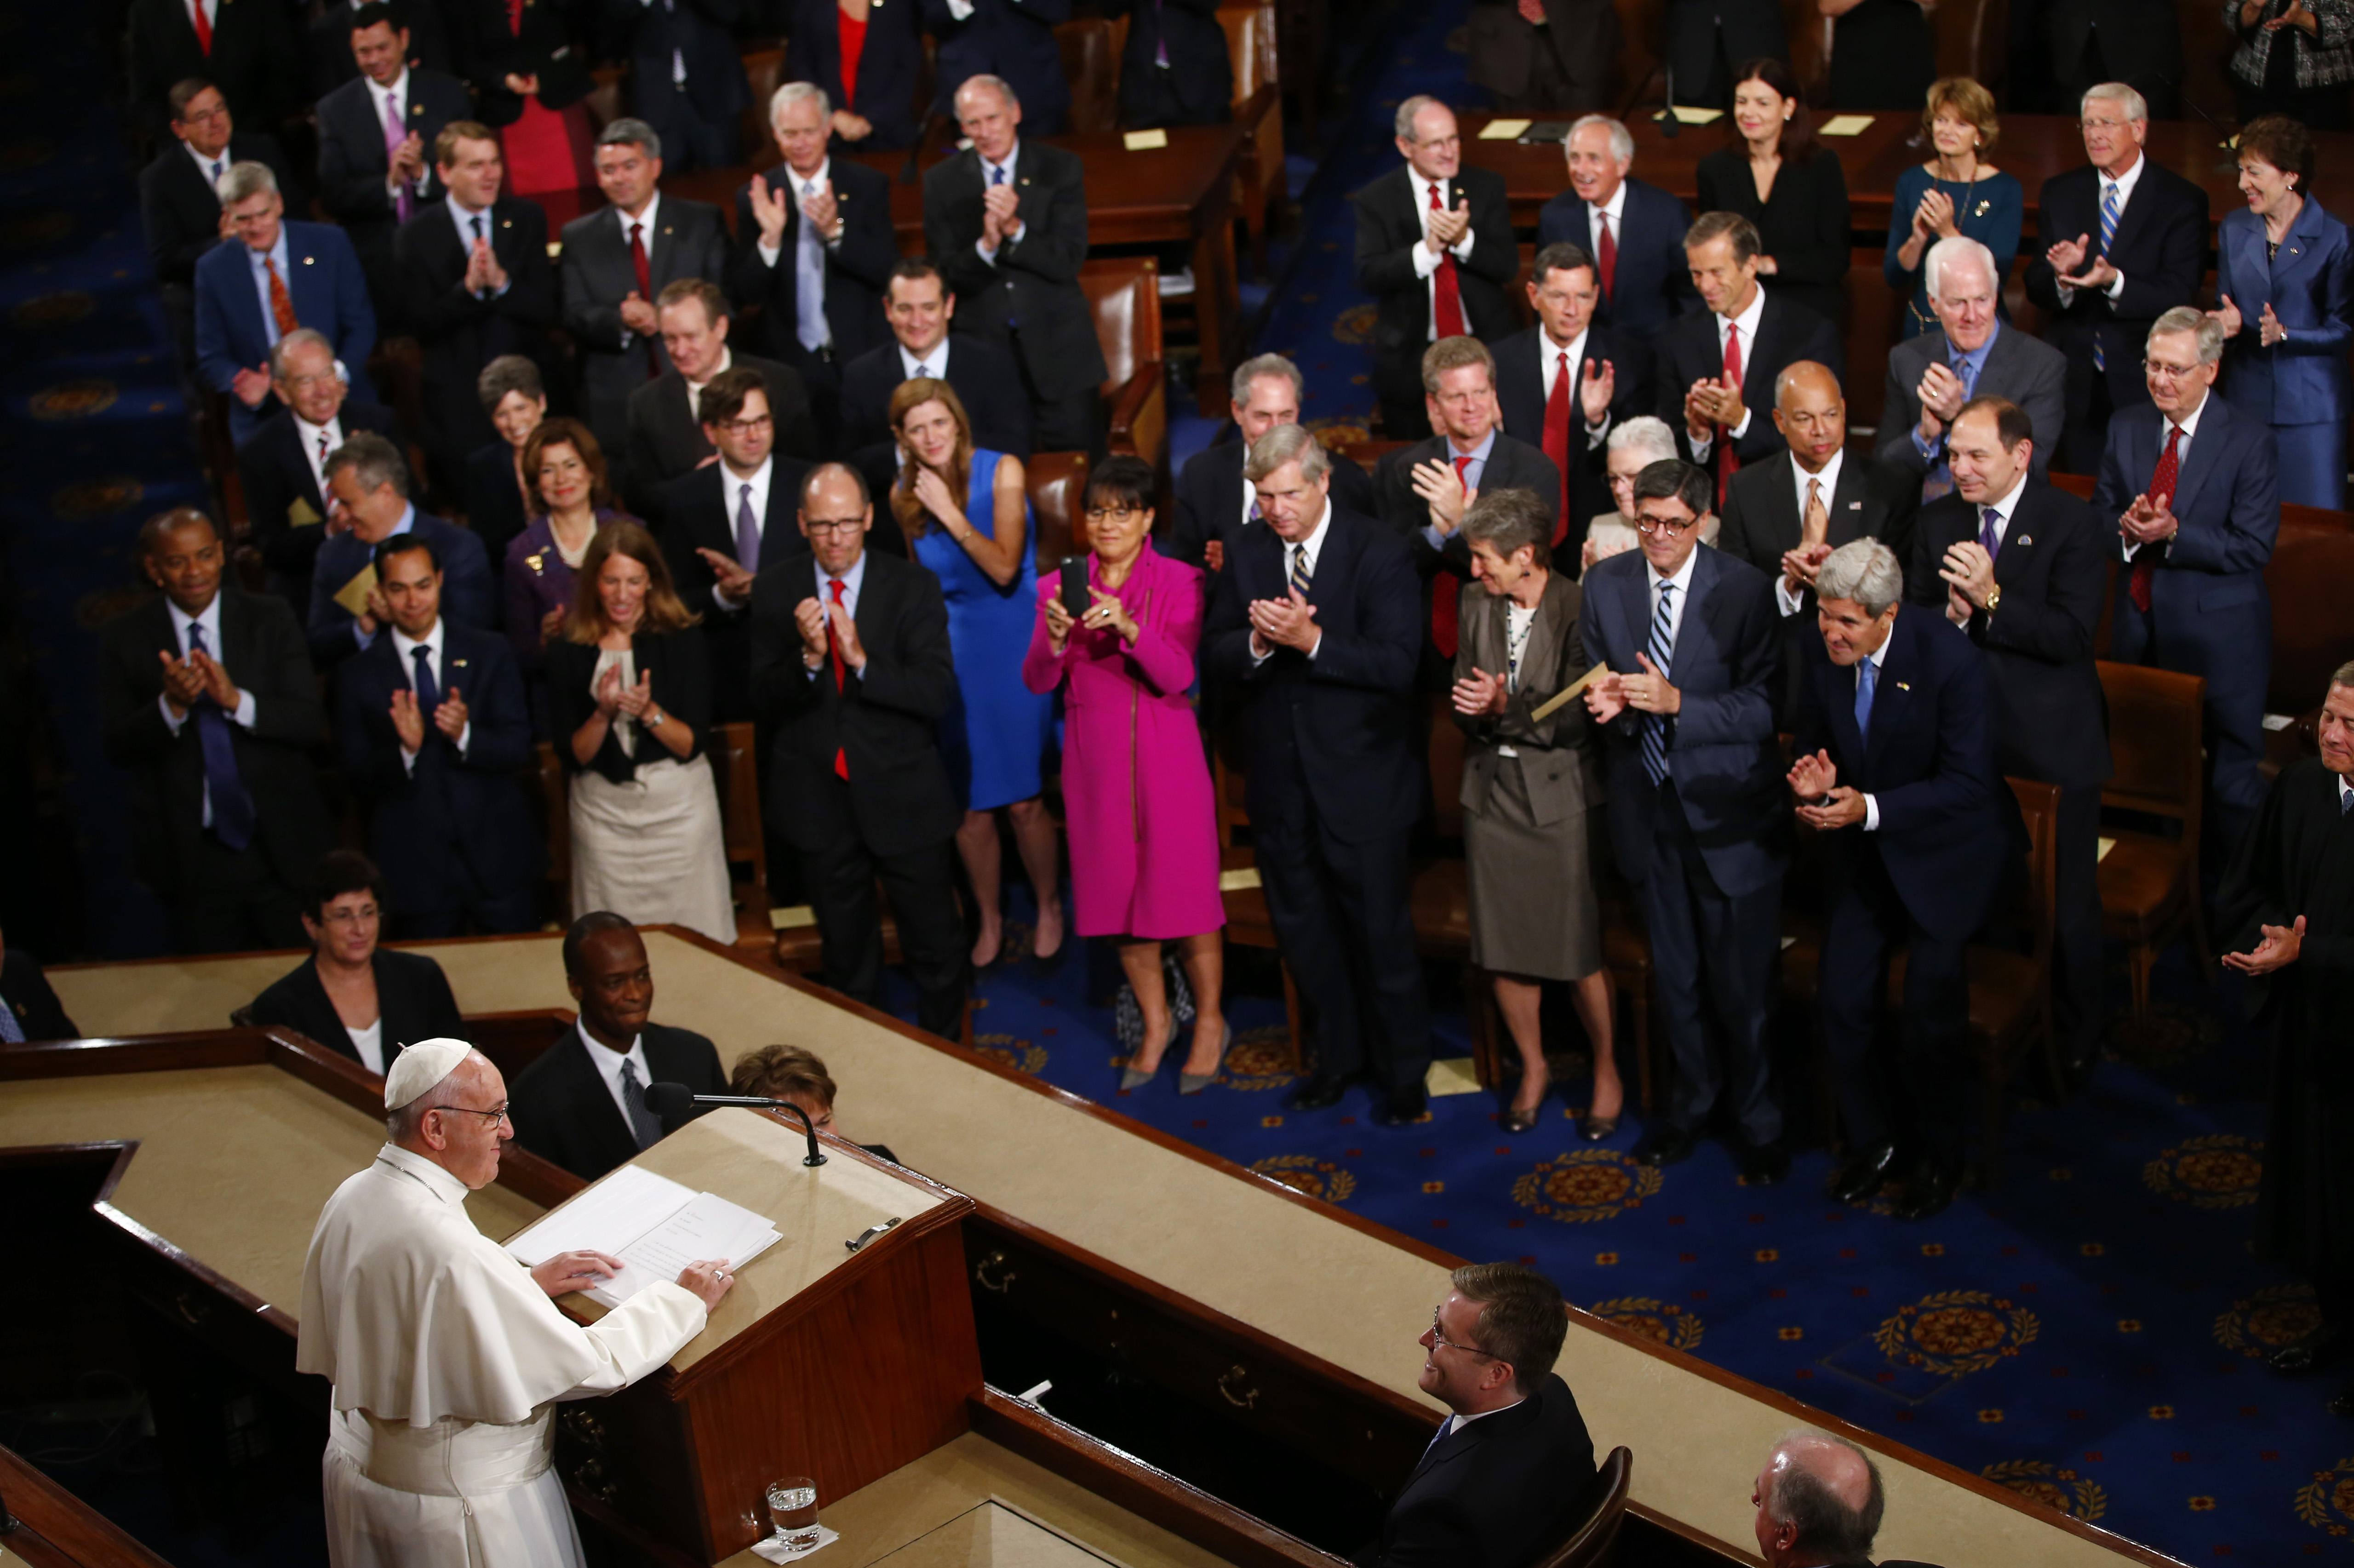 <p>Pope Francis listens to applause as he addresses a joint meeting of Congress on Capitol Hill in Washington, Thursday, Sept. 24, 2015, making history as the first pontiff to do so.</p>